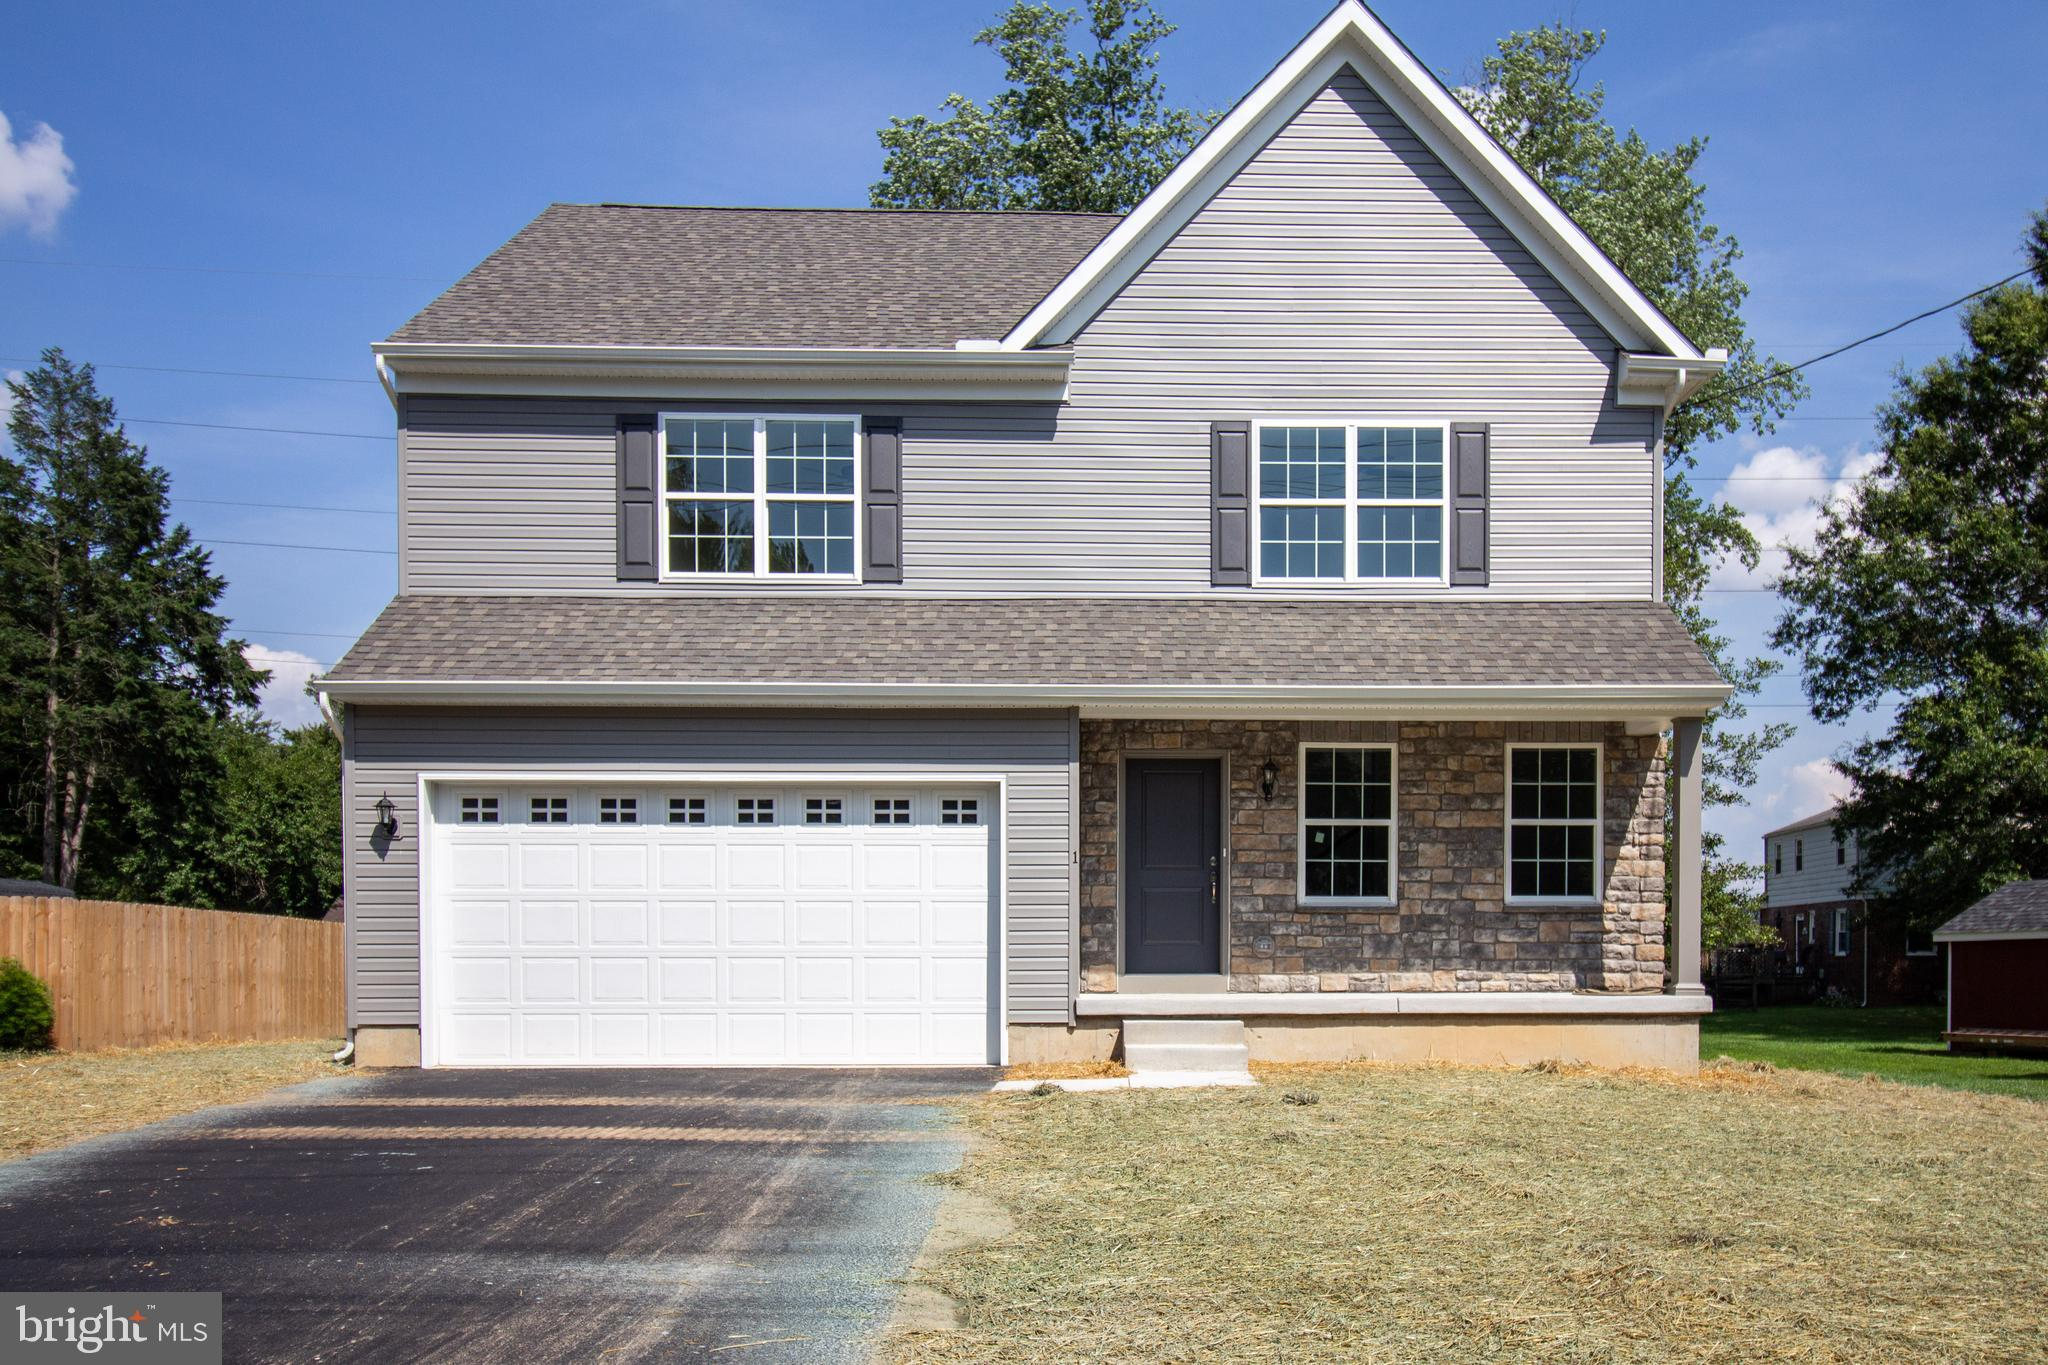 New Construction Quality Crafted by DC Custom Homes LLC. This 2 story, 4 bedroom, 2/1 bath colonial